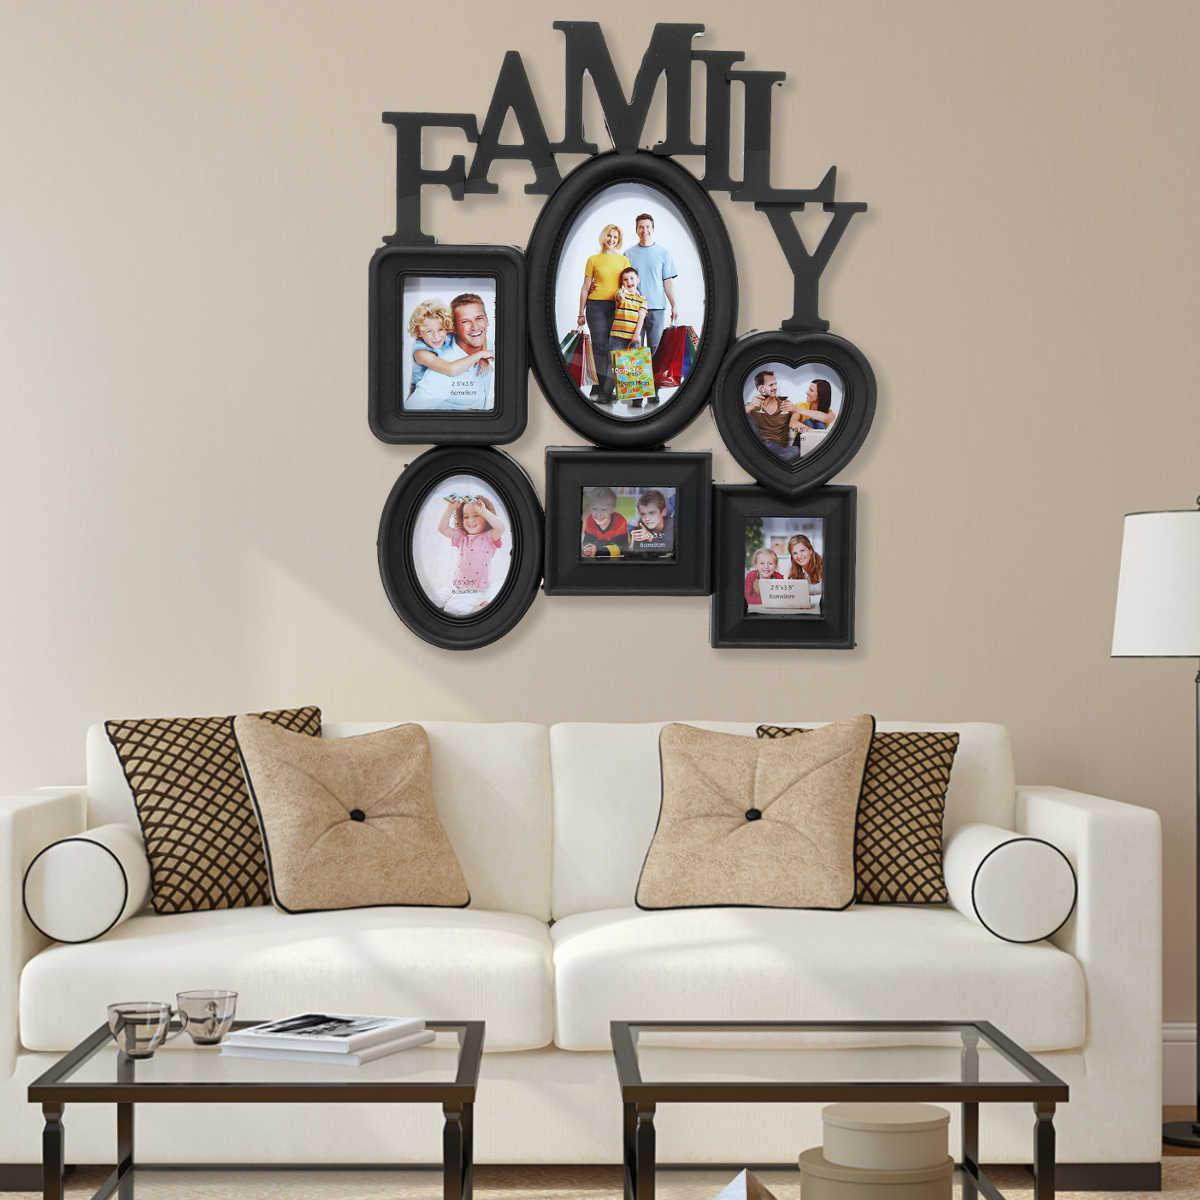 Fantastic Family Photo Frame Wall Hanging 6 Multi Sized Pictures Holder Display Home Decor Gift Black 30X37Cm Back Side With Pull Tabs C19041701 Download Free Architecture Designs Scobabritishbridgeorg